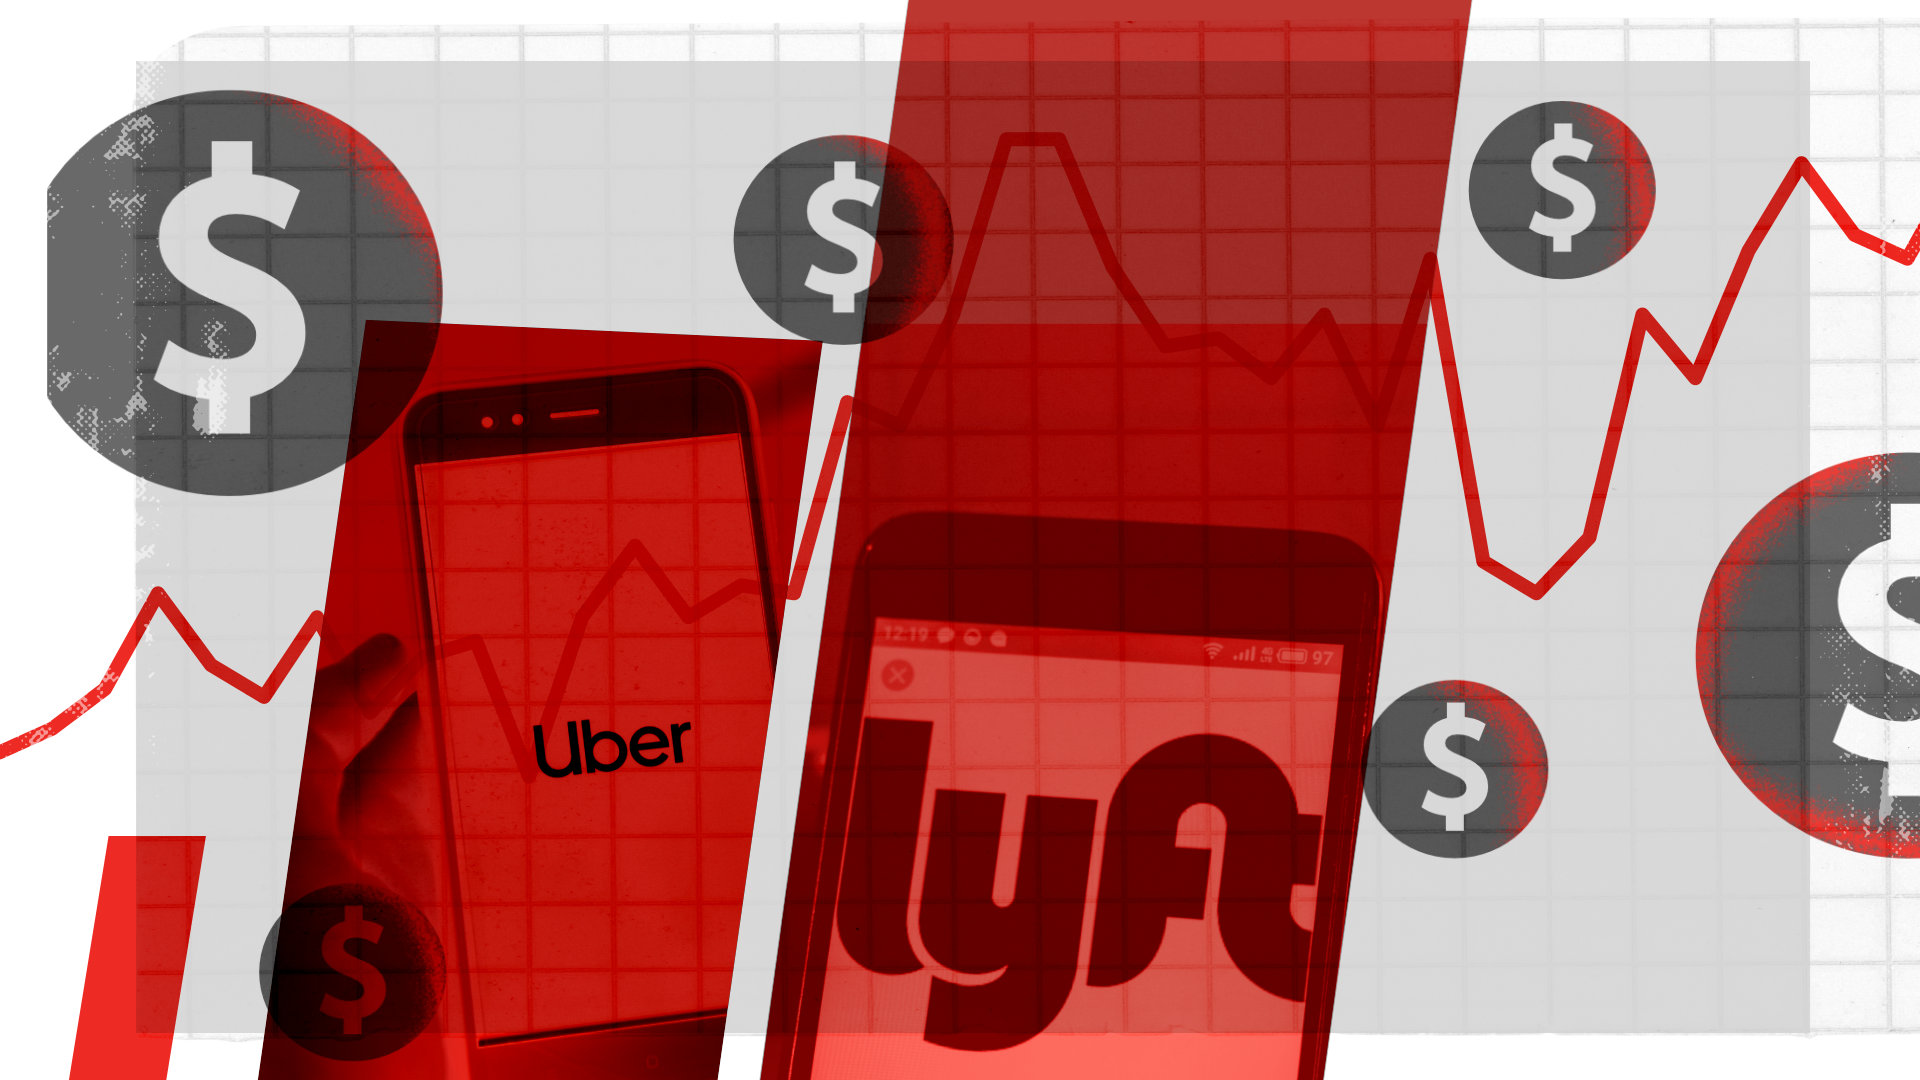 An illustration of two cellphone screen, one showing Uber, the other Lyft.